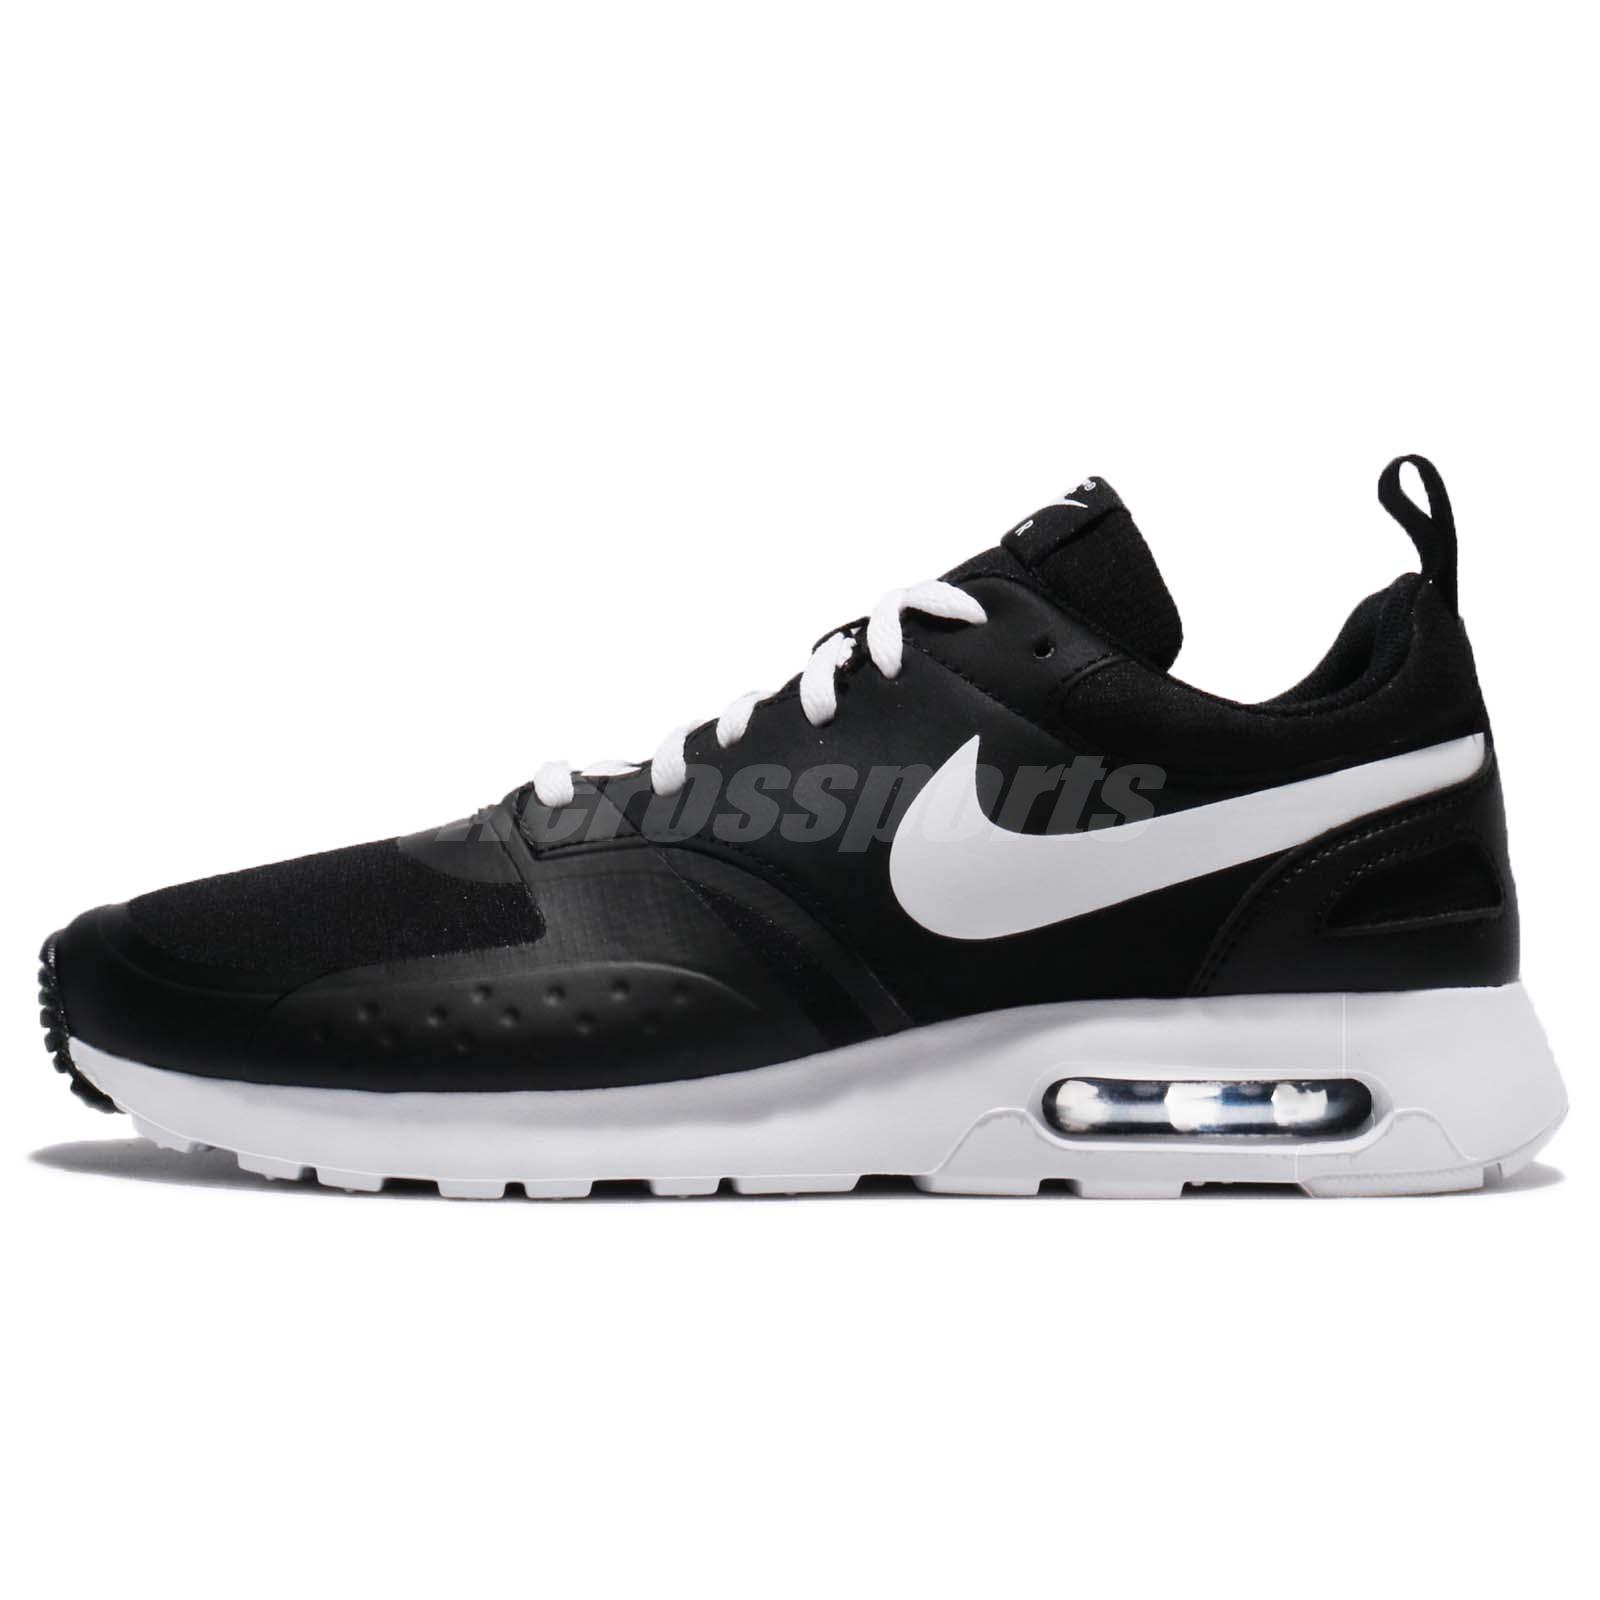 new concept 10b04 2ca94 Nike Air Max Vision Black White Men Running Shoes Sneakers Trainers 918230- 007